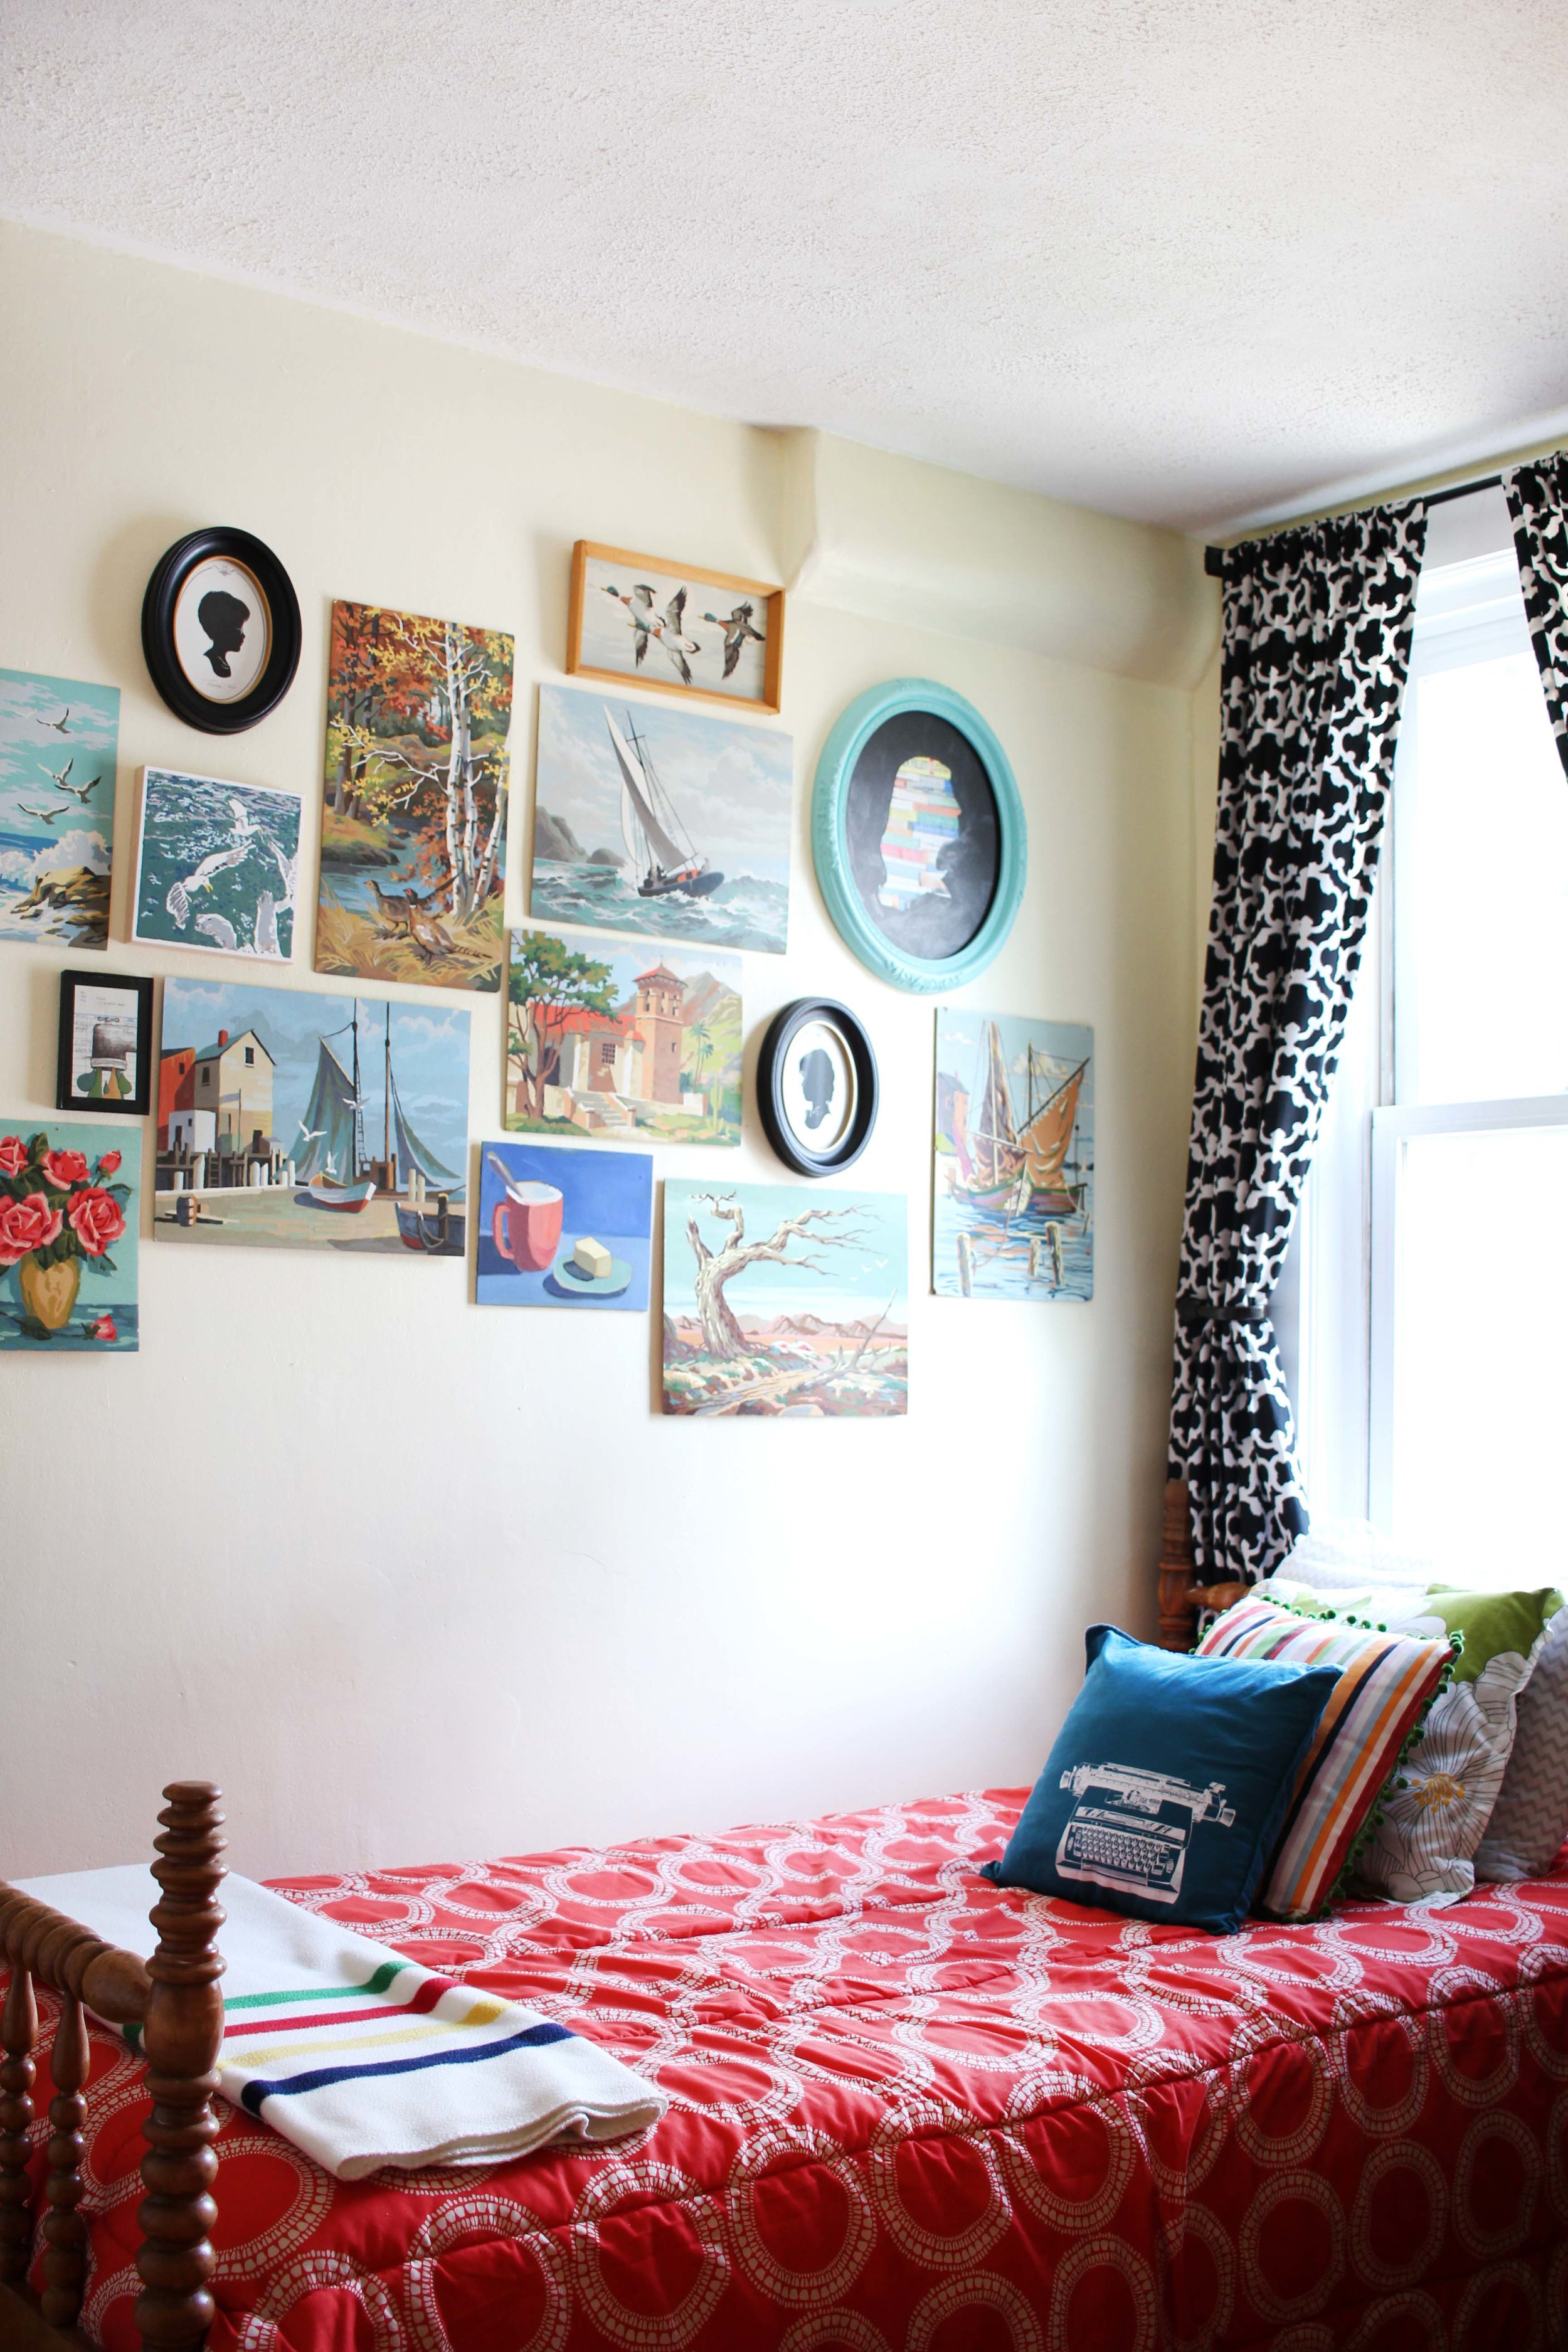 Zandra your guestroom's gallery wall is doing it for us. We'll come stay here.